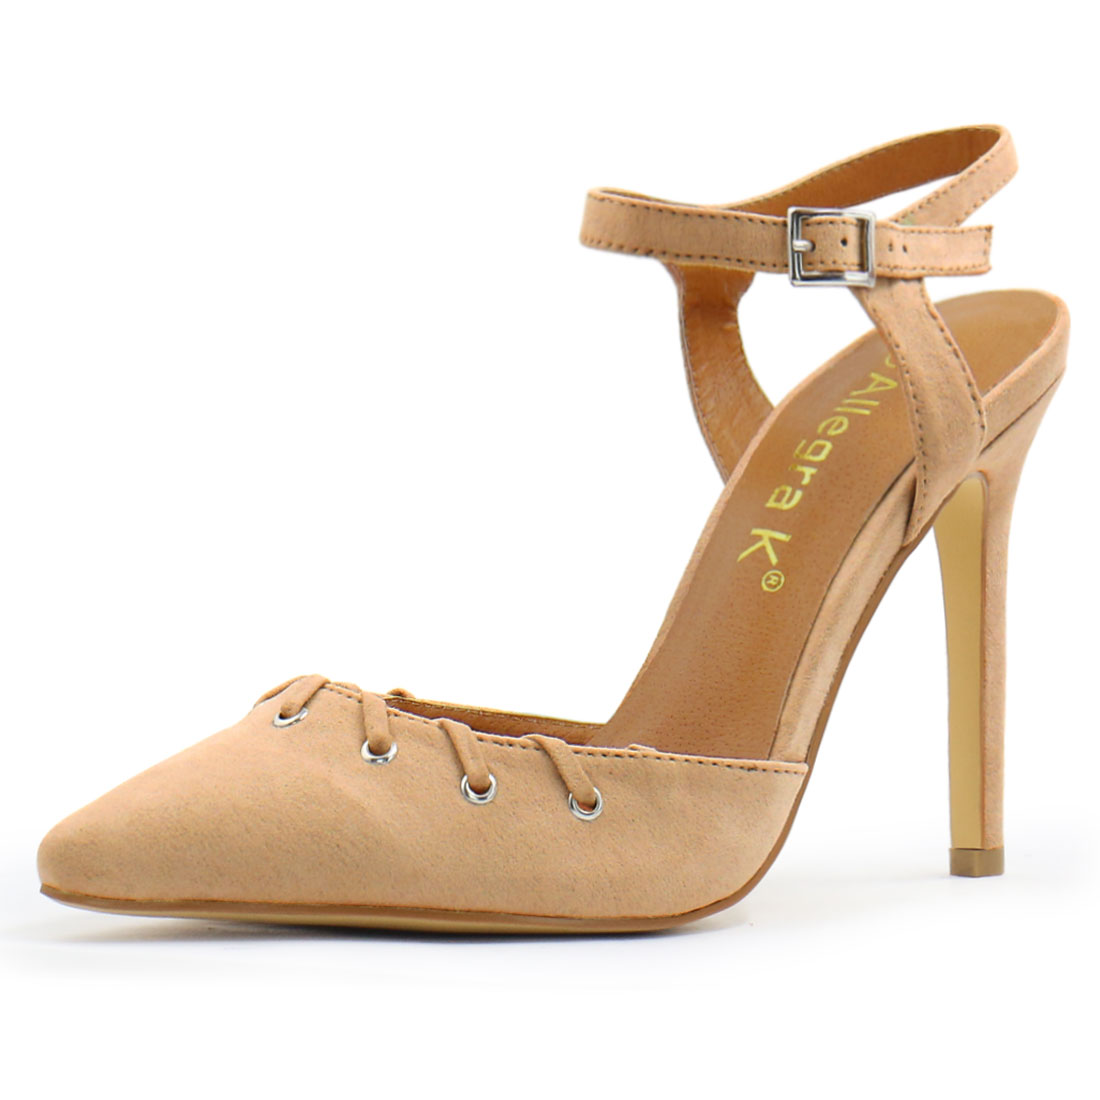 Women Pointed Toe Stiletto Lace Up Decor Ankle Strap Pumps Beige US 6